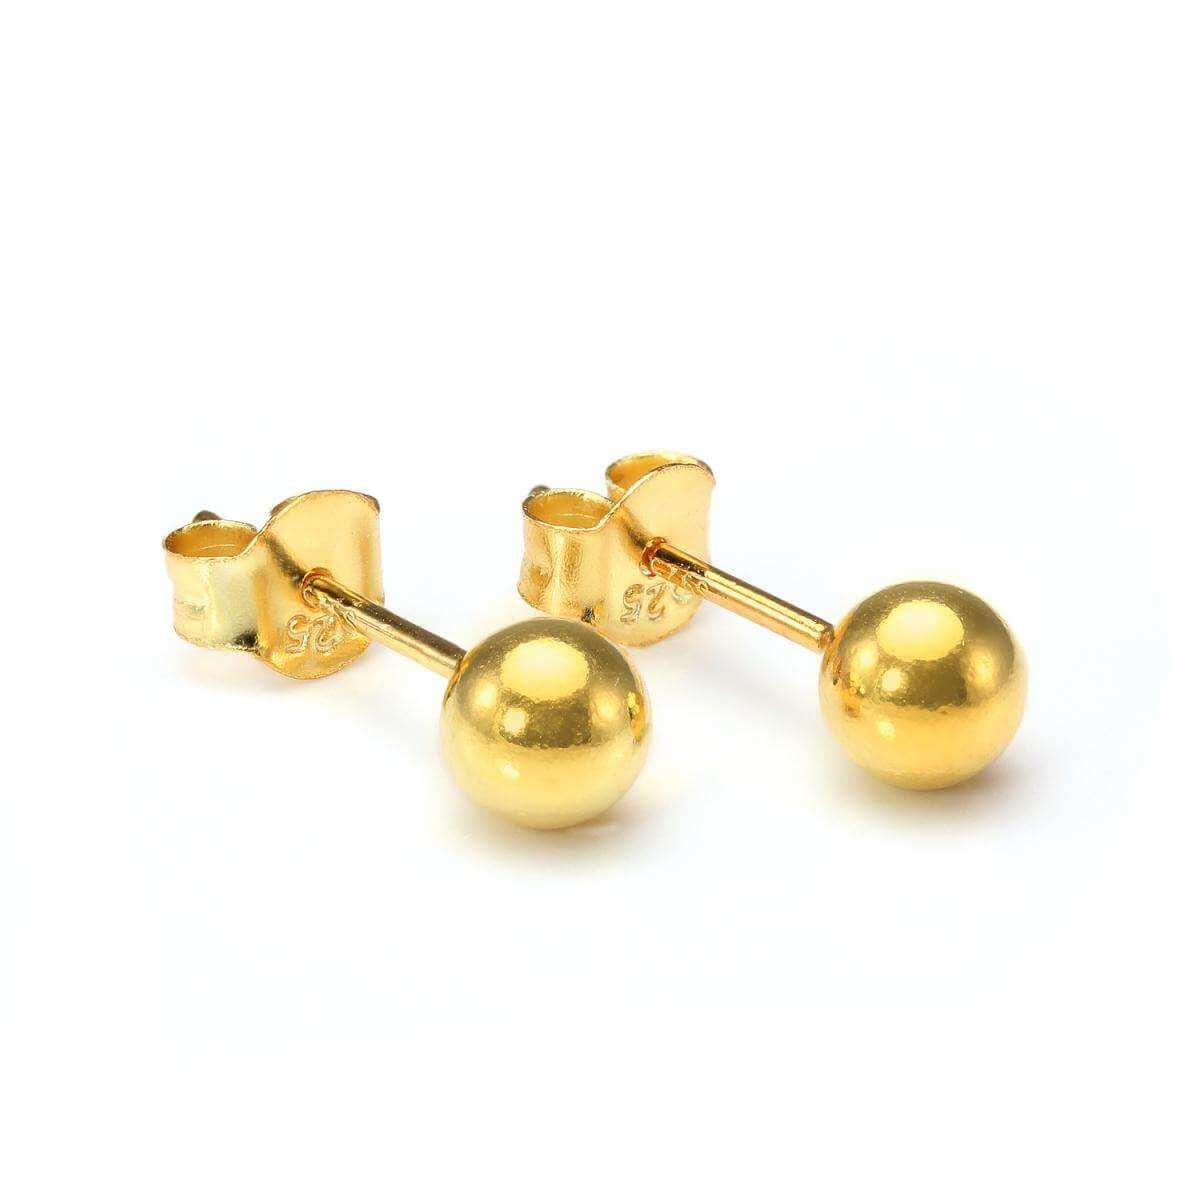 Gold Dipped Small 5mm Sterling Silver Ball Stud Earrings